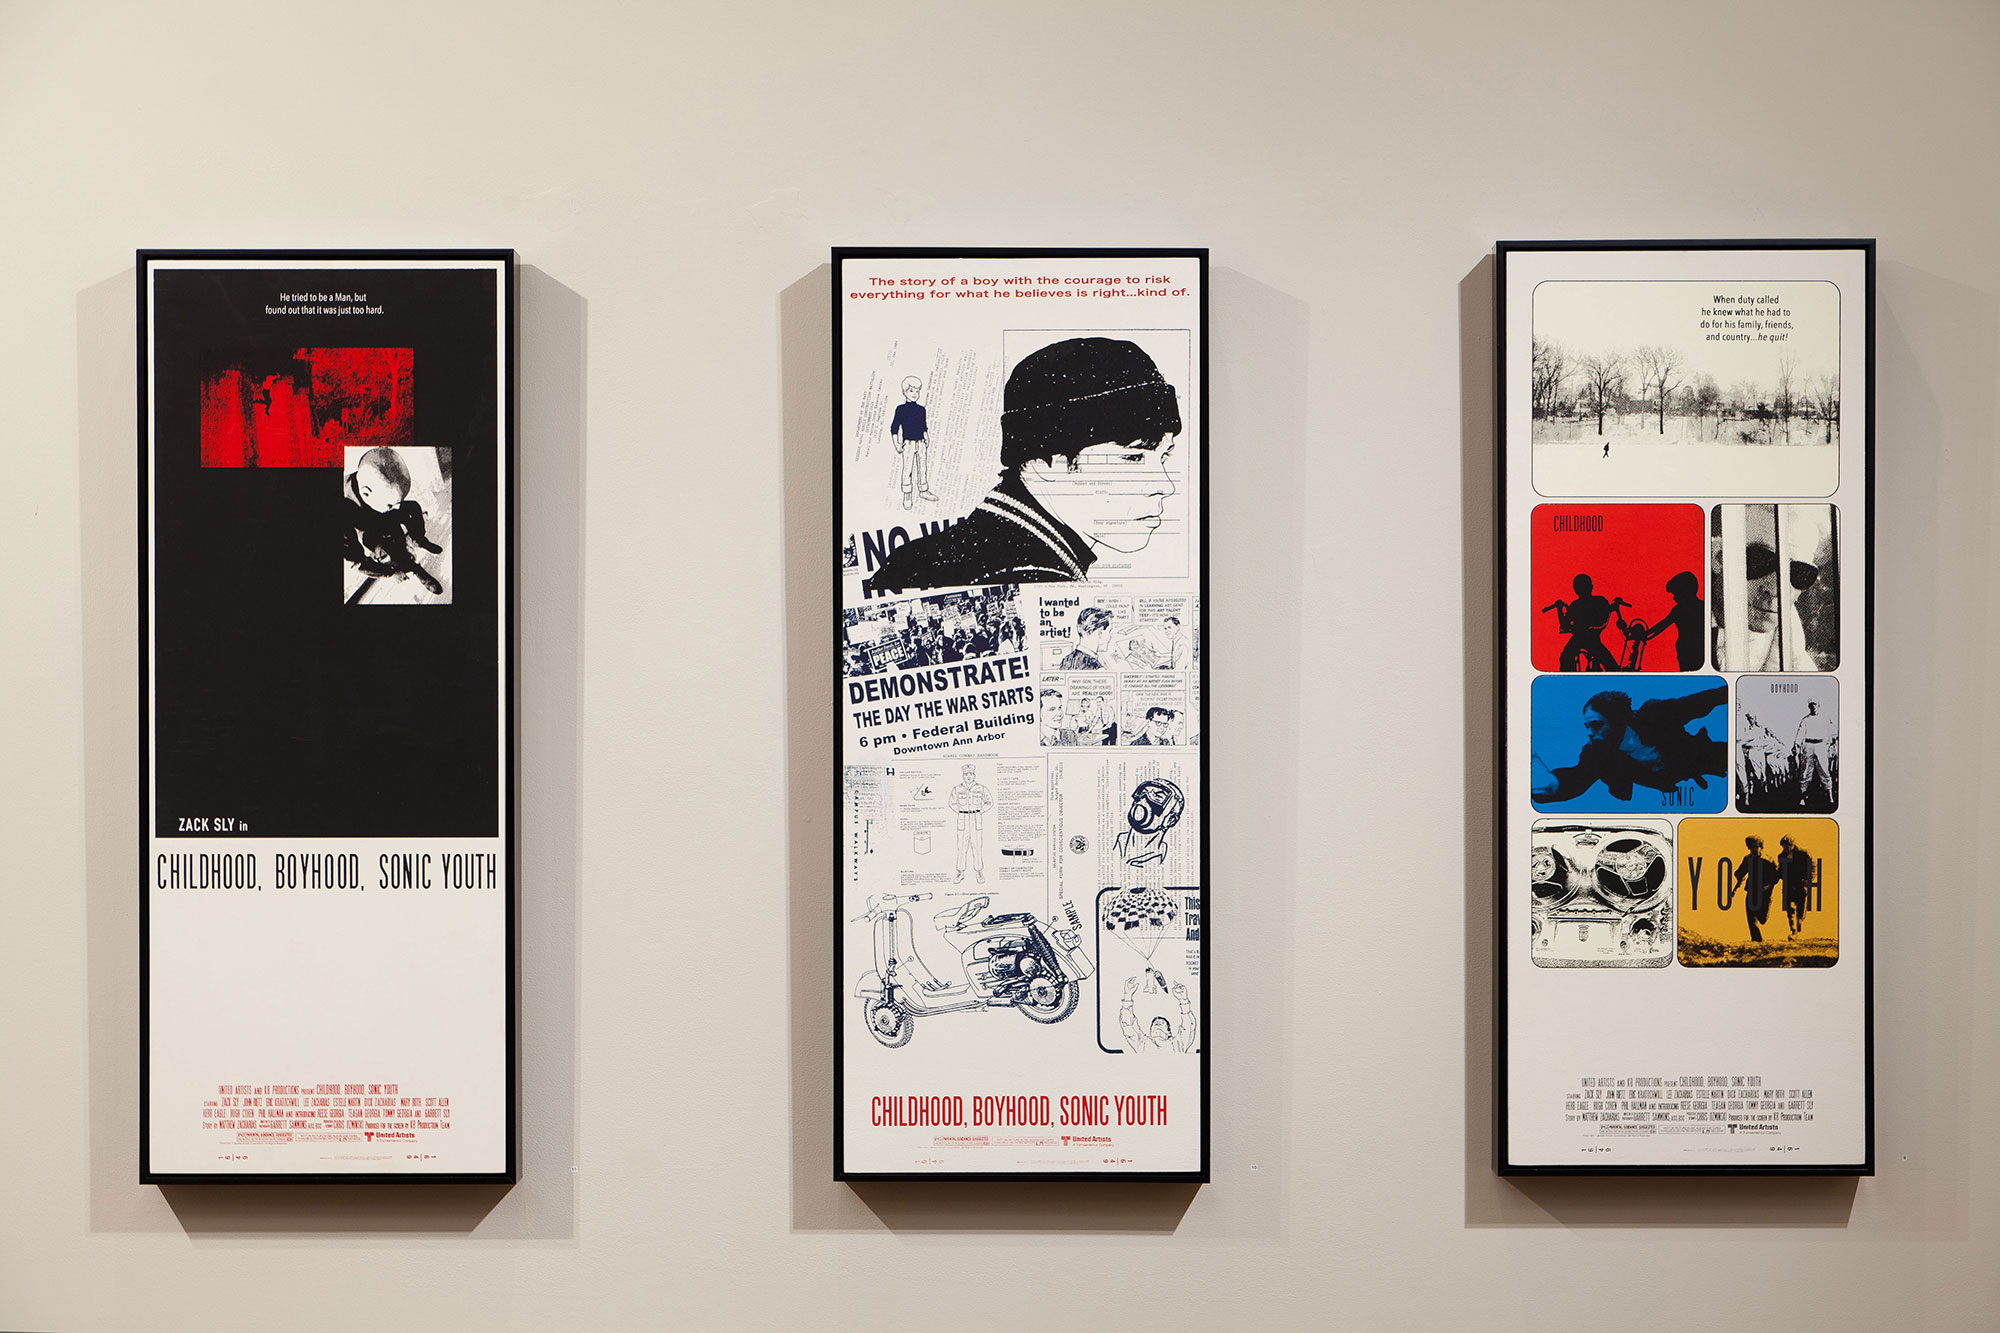 Posters 1, 2 and 3